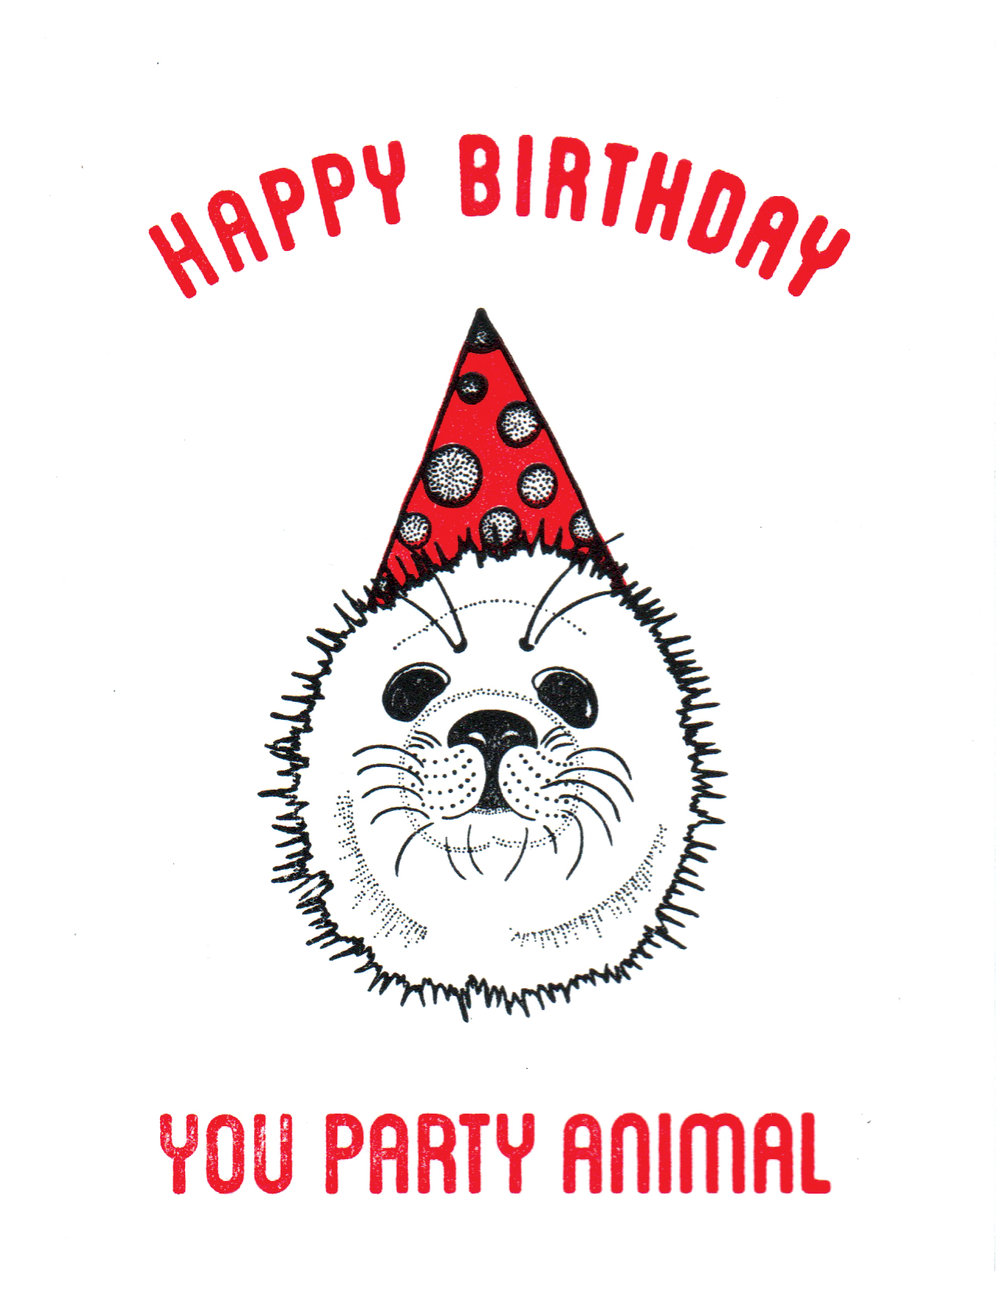 Party Animal - Seal Print